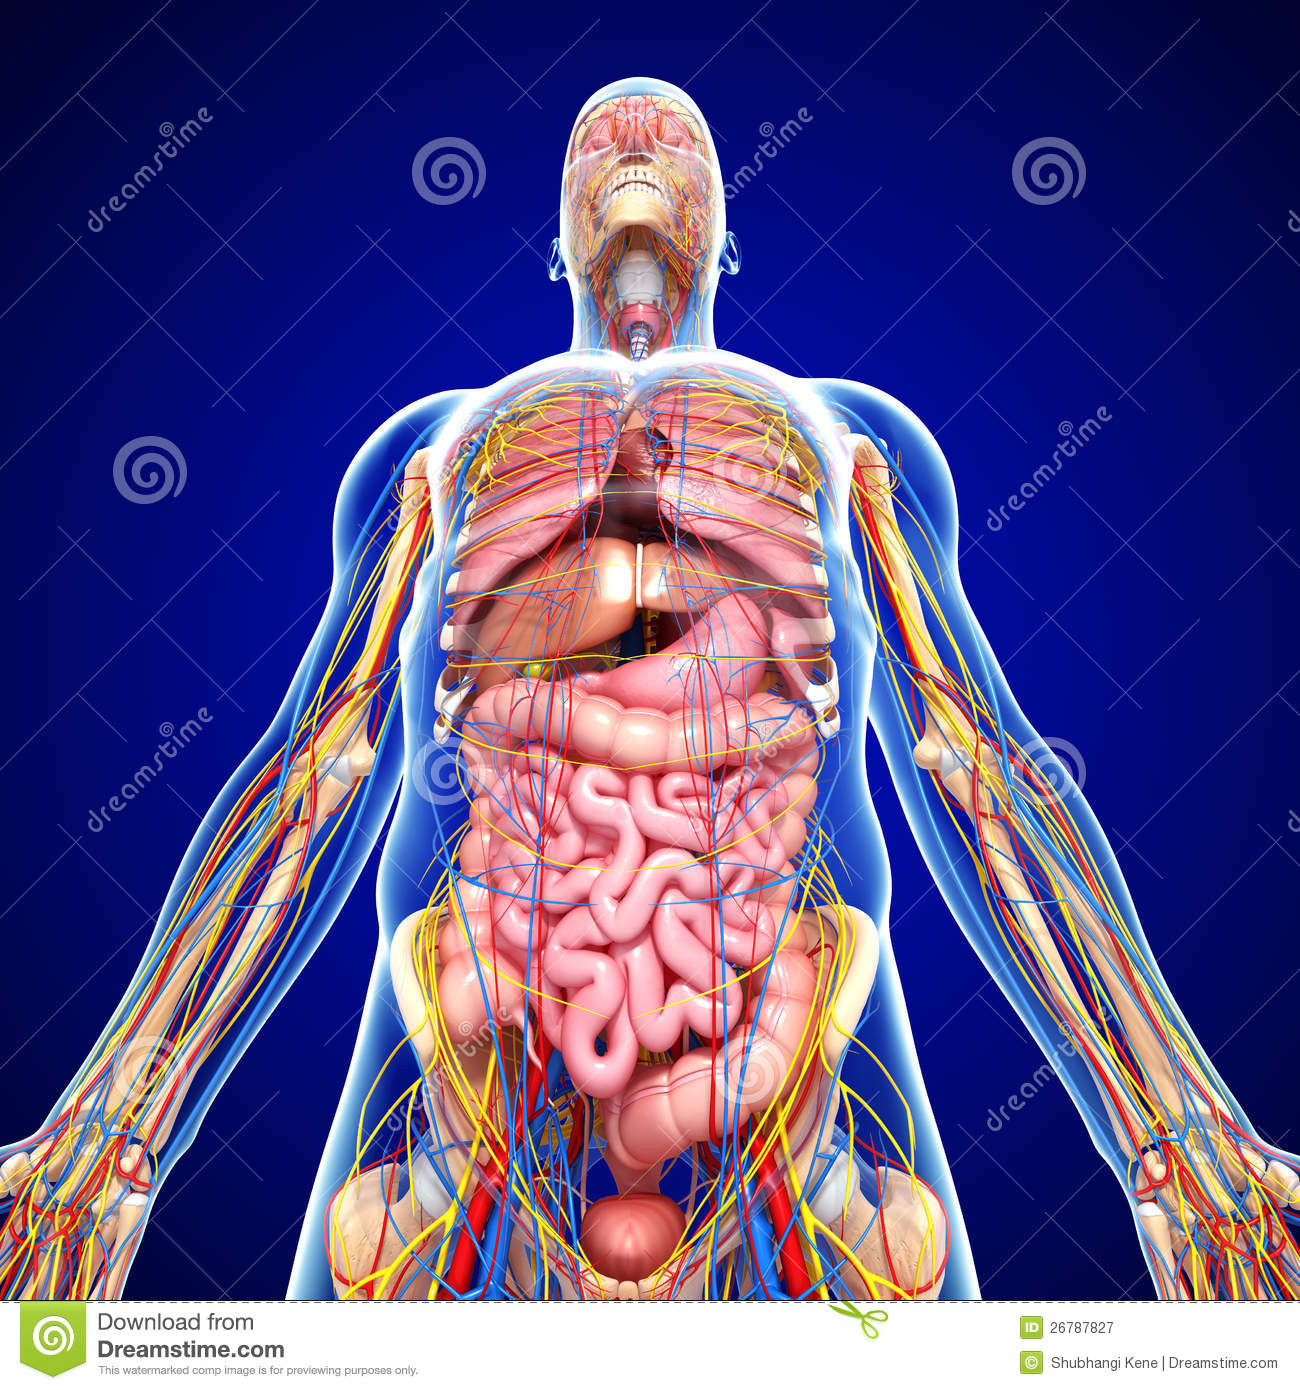 Nervous System With Circulation In Human Body Stock Illustration